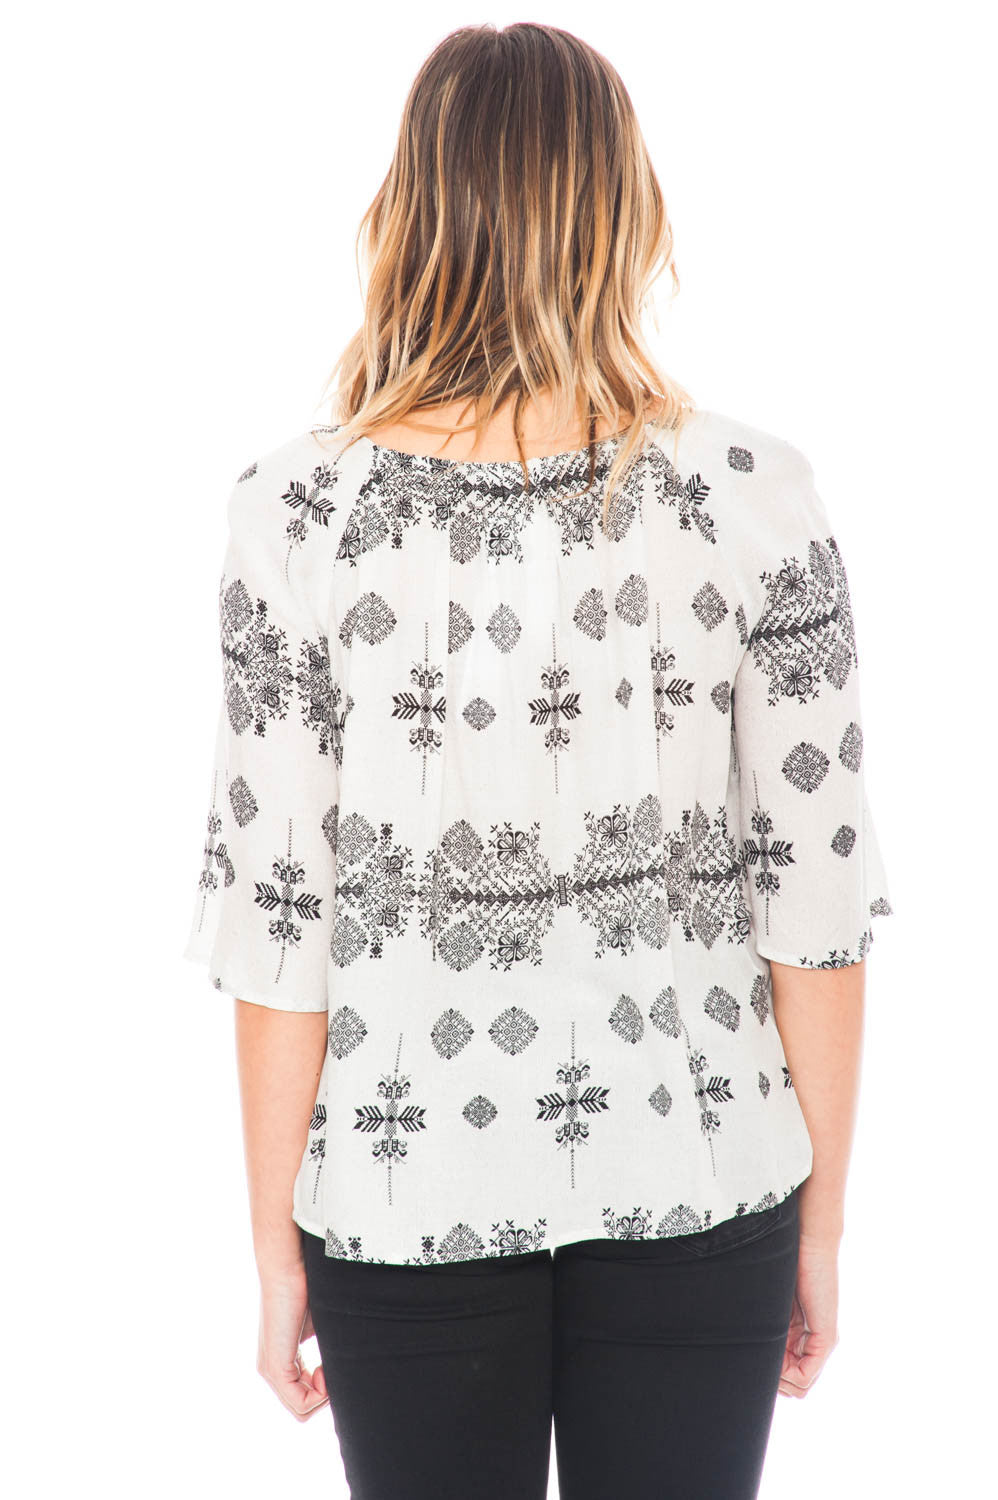 Blouse - Rila by BB Dakota Tribal Print Top with Tassels